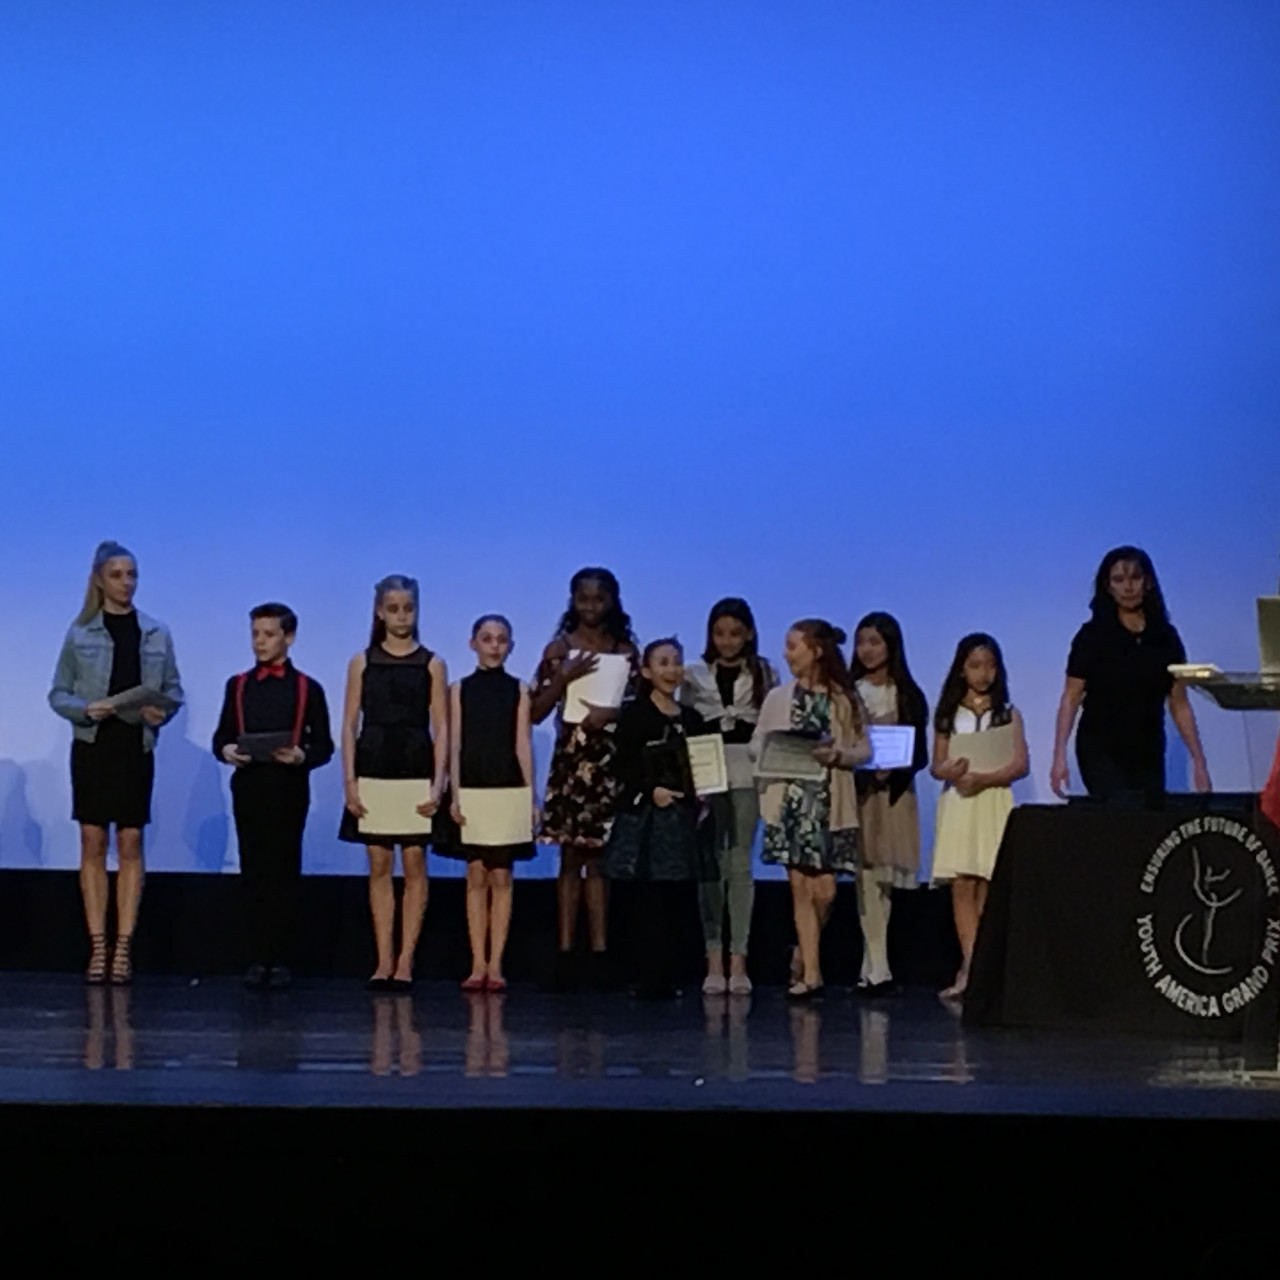 Our little ones on stage receiving awards with Karina Plantadit.